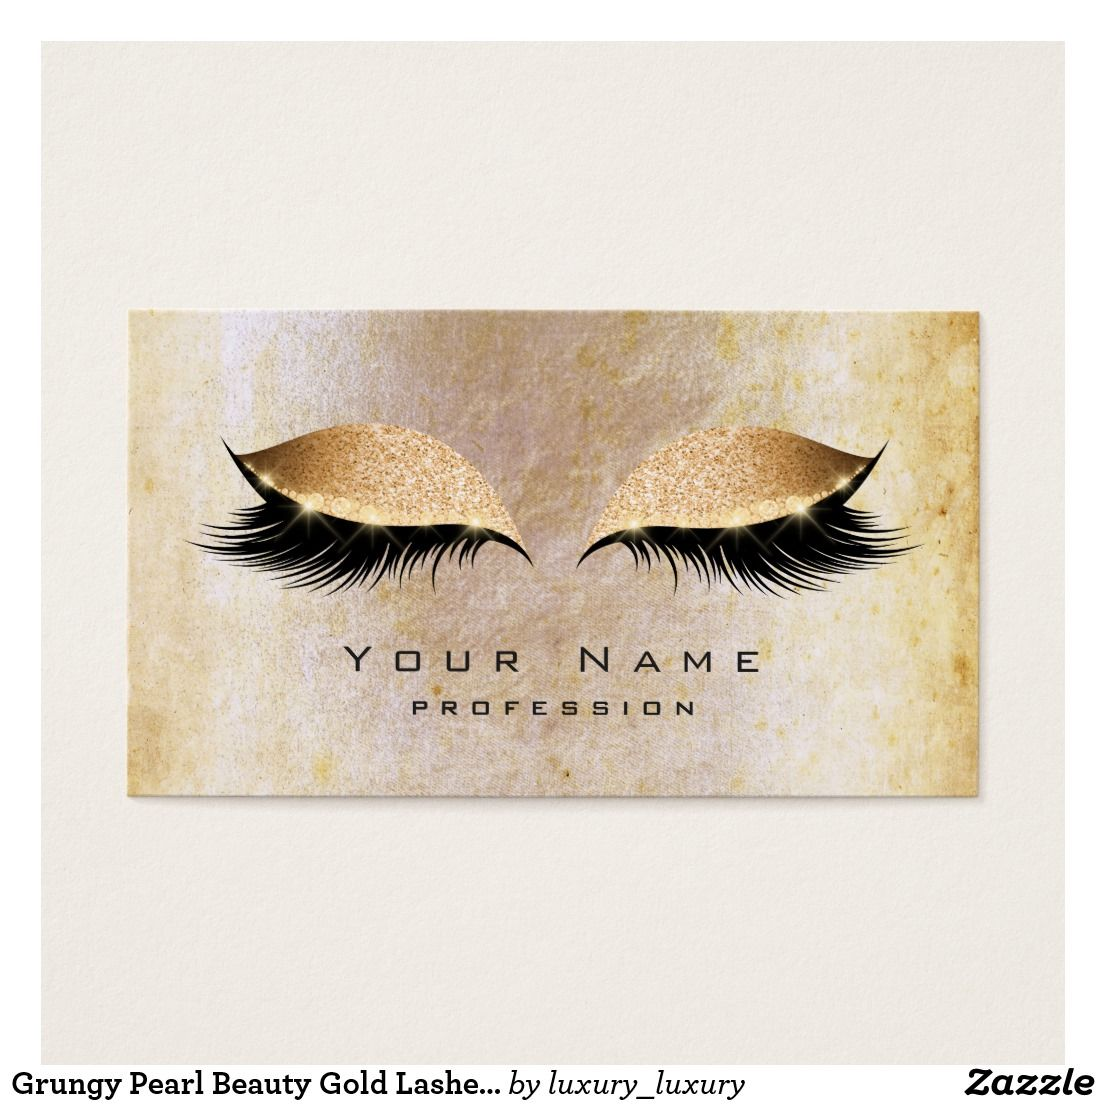 Grungy Pearl Beauty Gold Lashes Makeup Eye Glitter Business Card ...